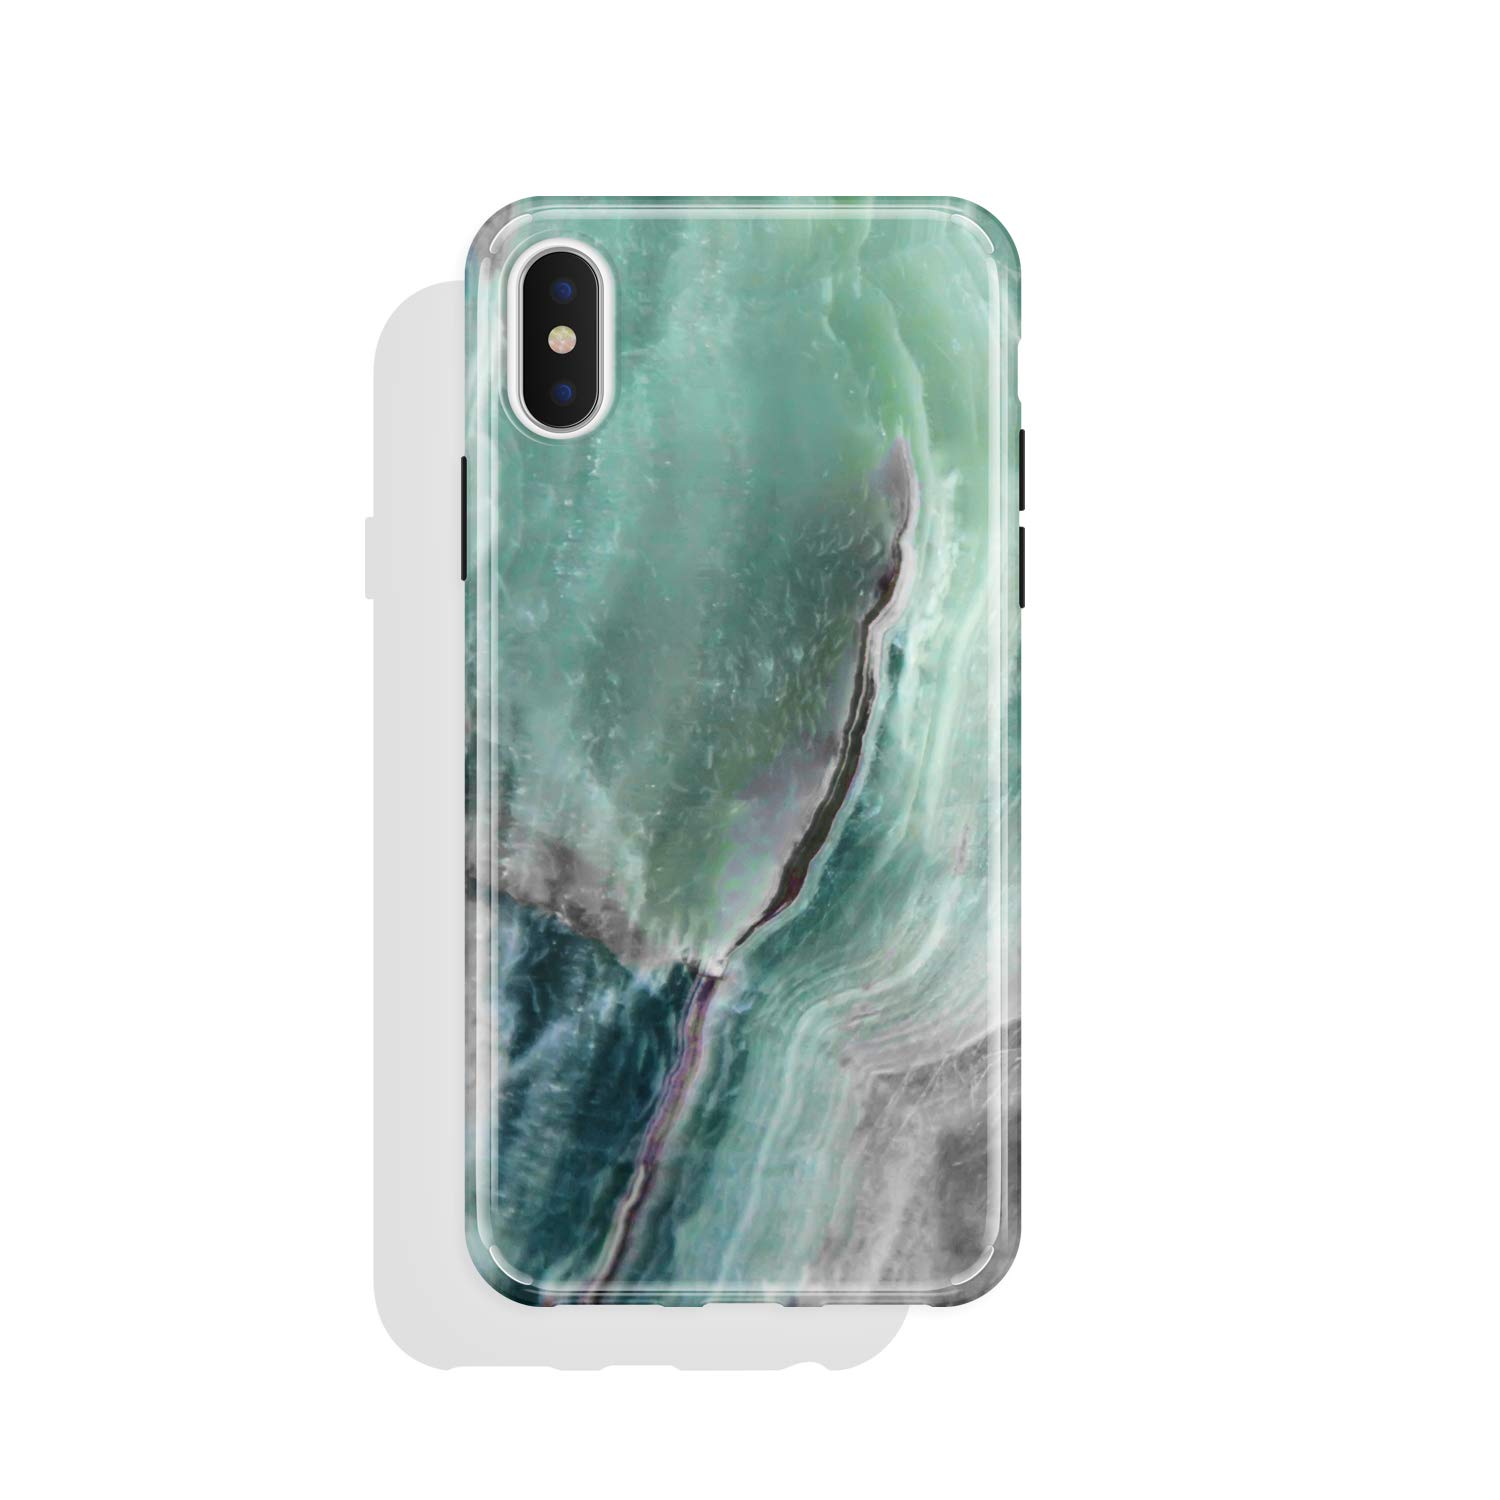 Akna iPhone X case for girls, High Impact Flexible Hard Cover for iPhone X (740-U.S)